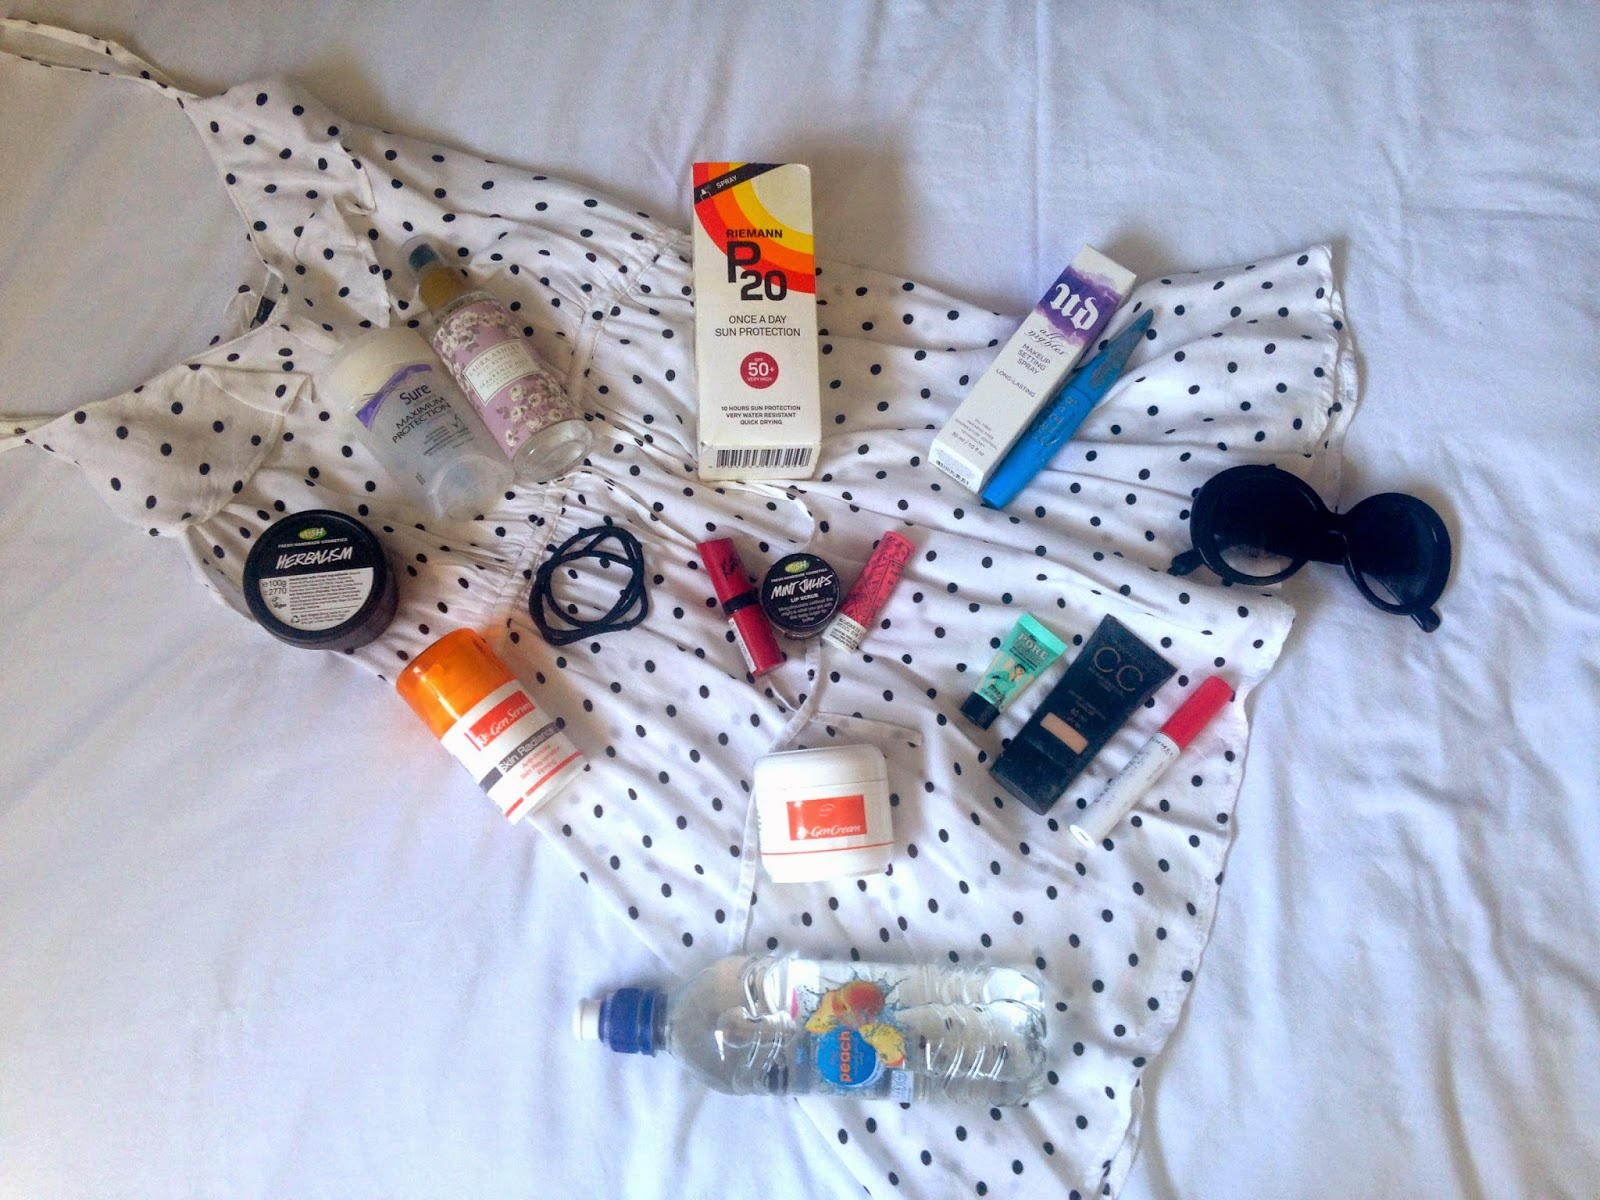 A photograph of my summer fashion, beauty and lifestyle essentials